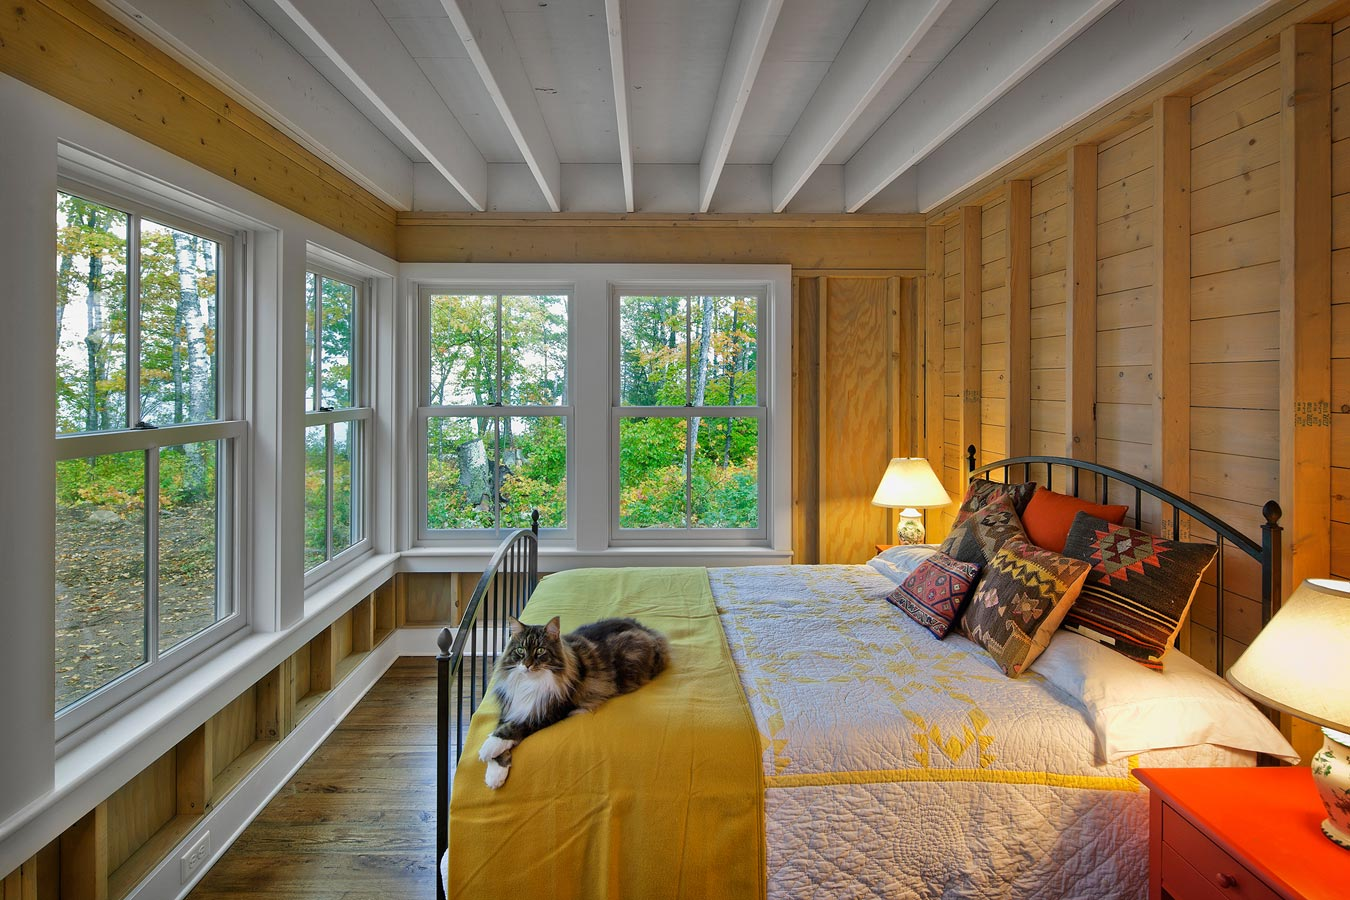 Bedroom with natural wood walls and large Marvin Double Hung windows, with a cozy bedspread and a cute little cat.